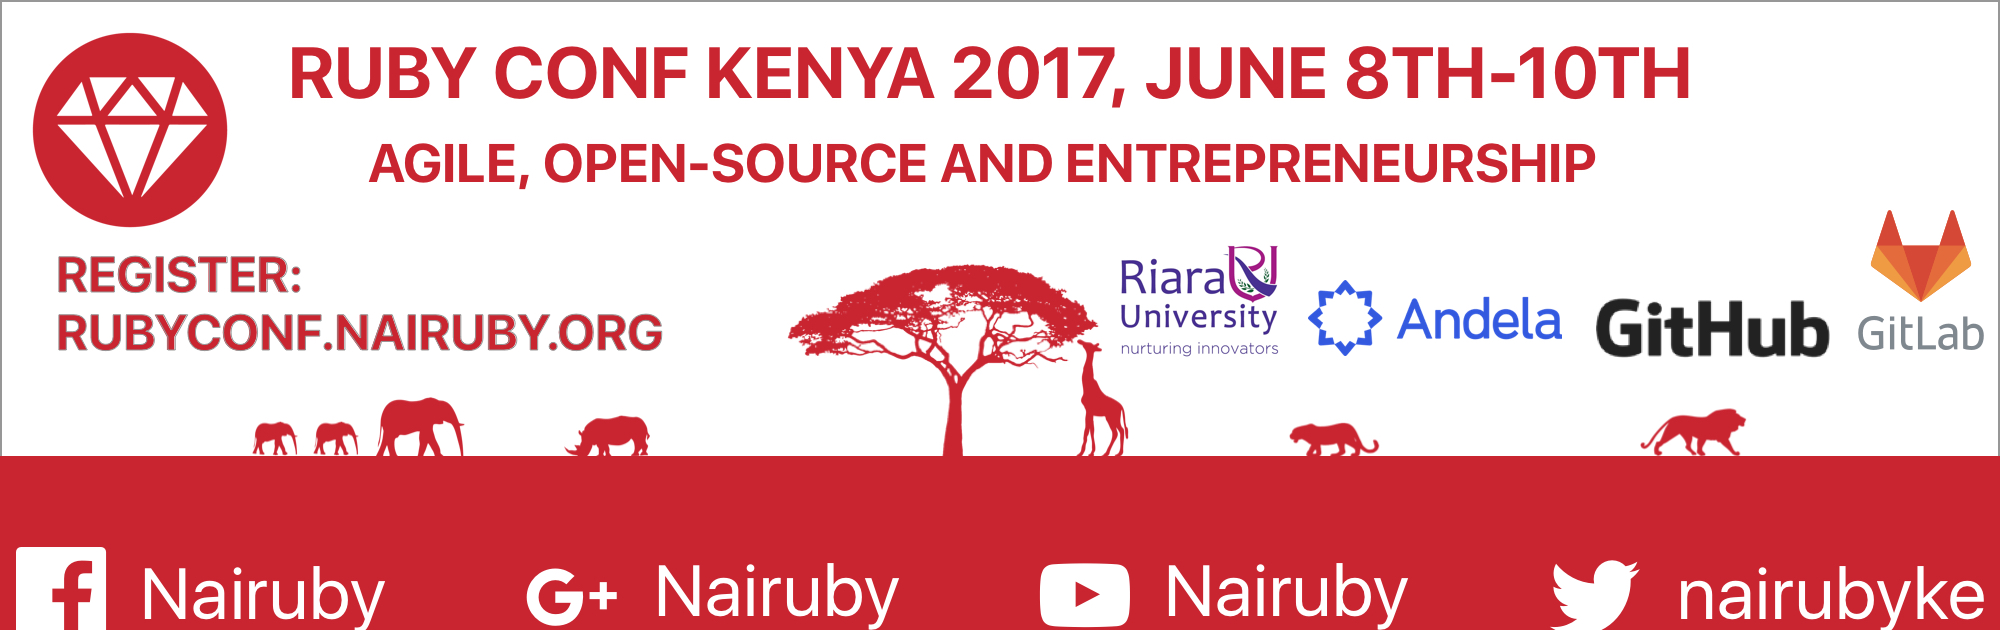 Ruby Conference 2017 May Update